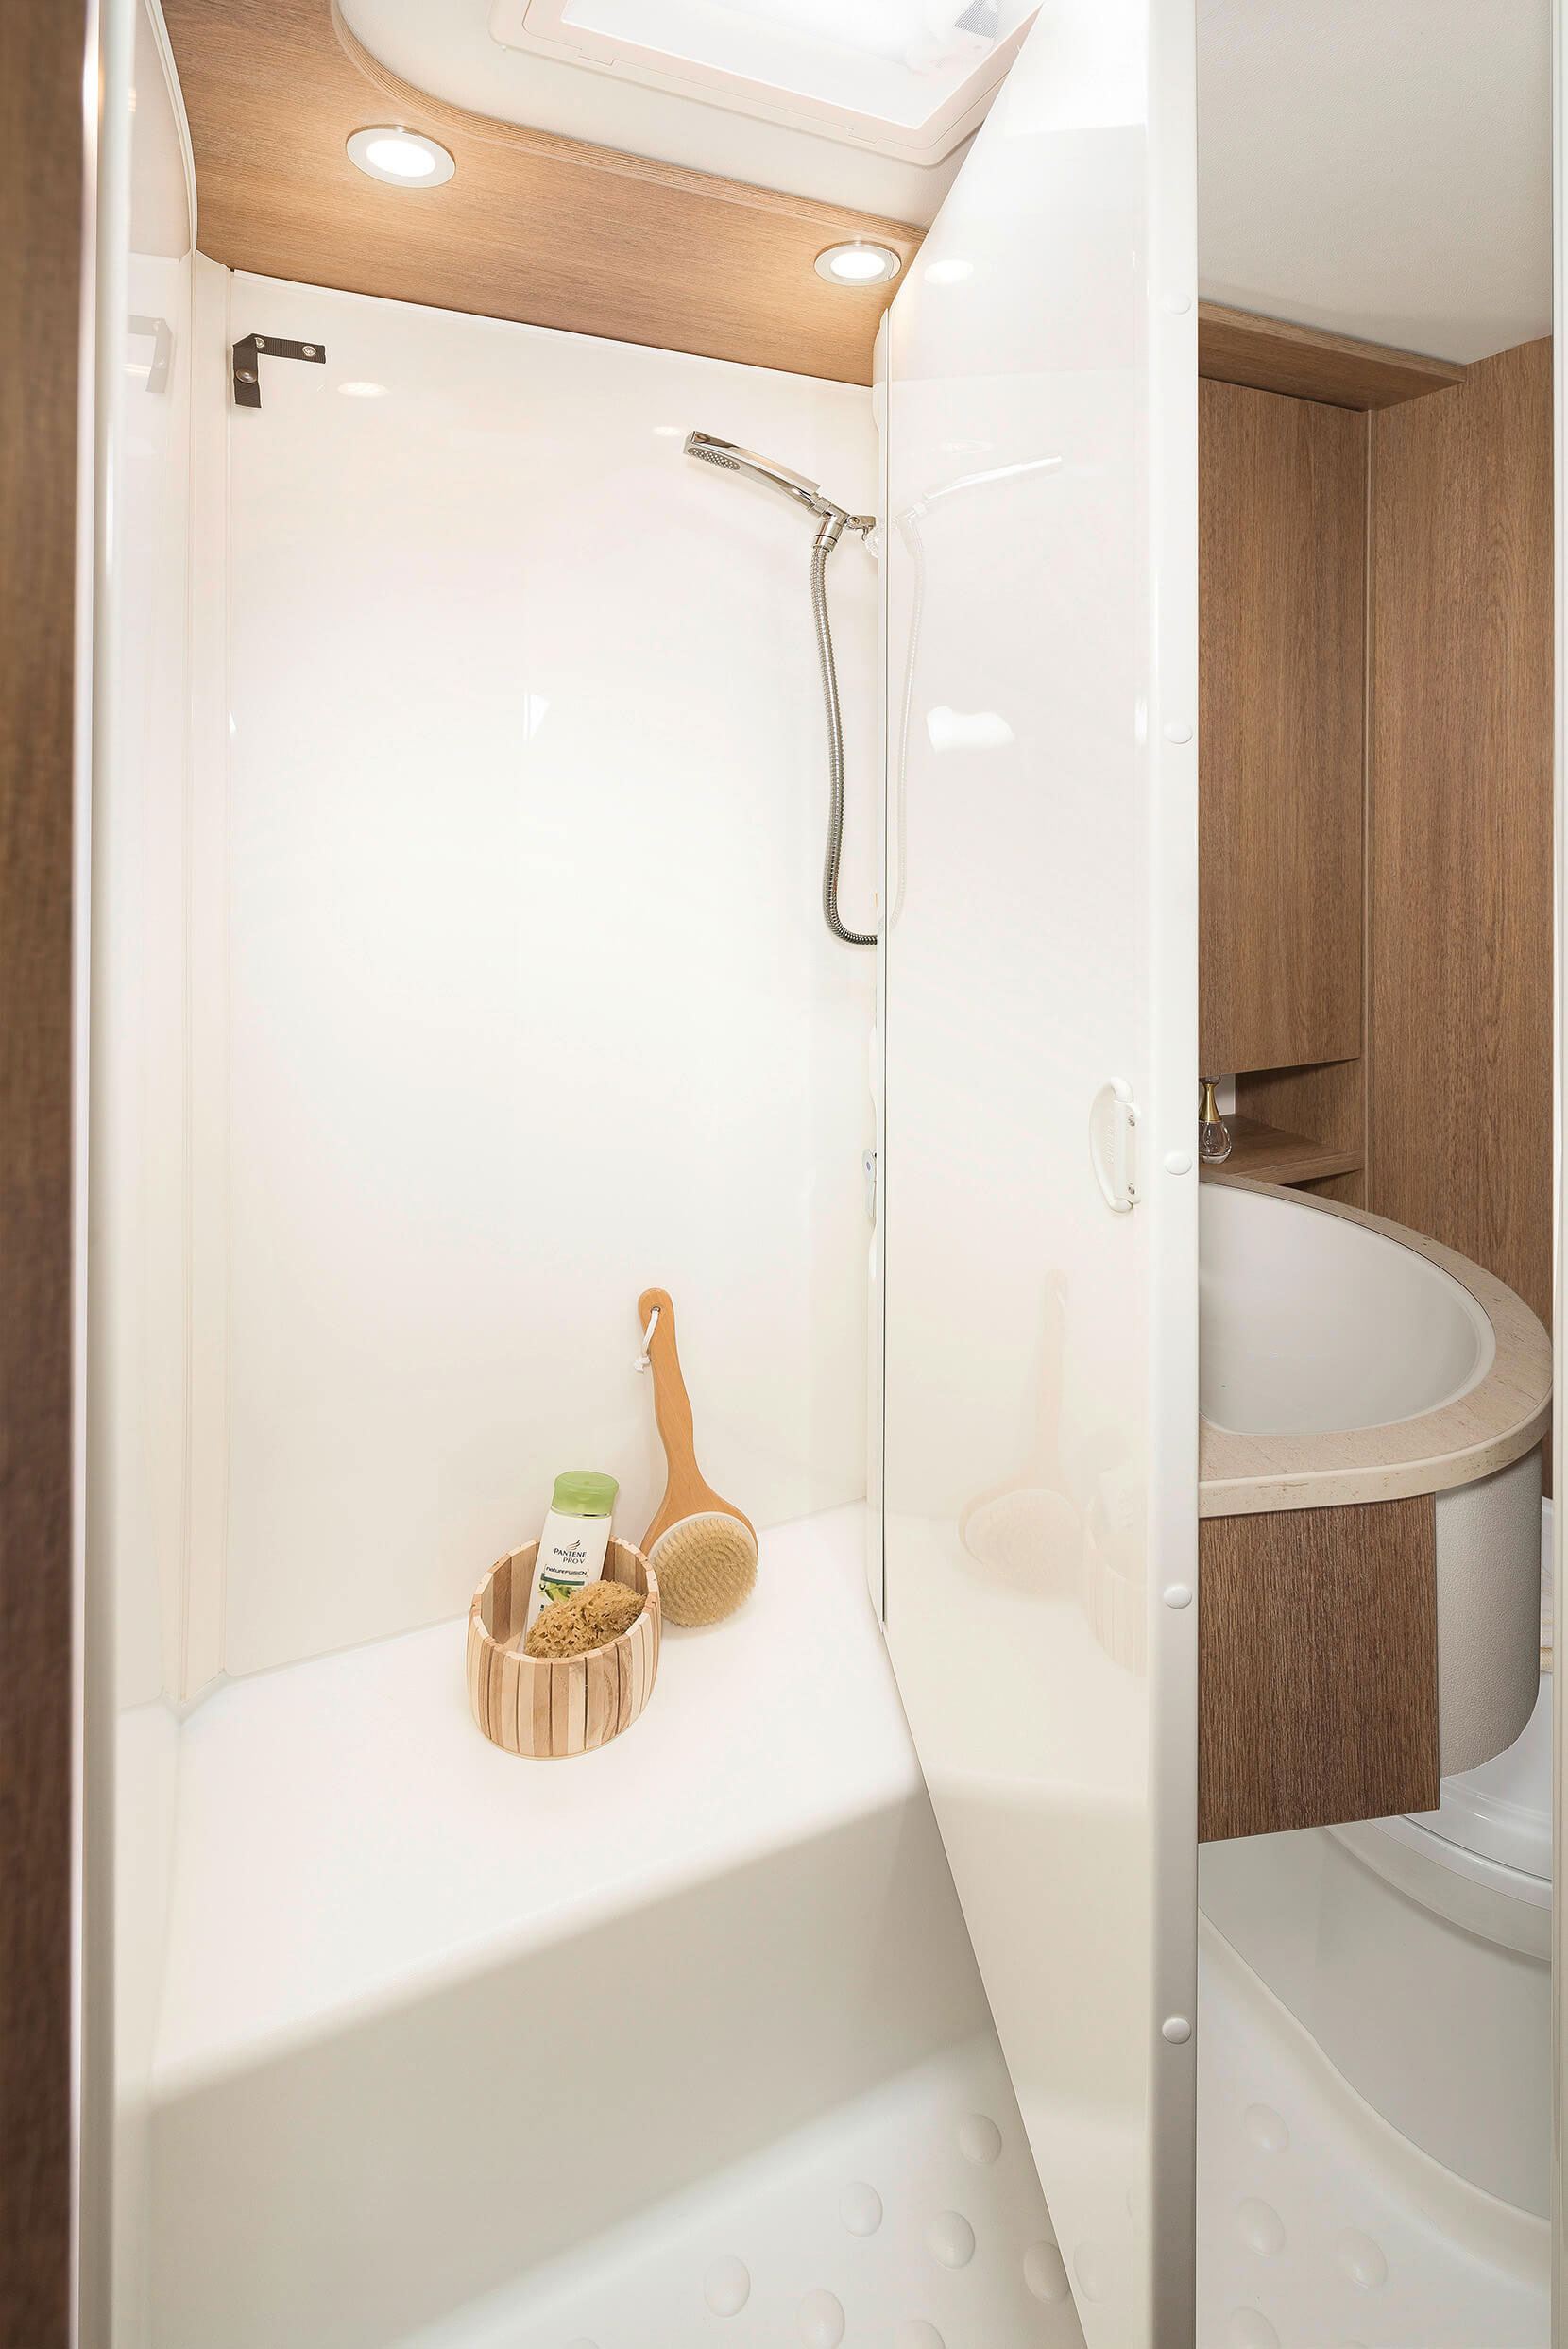 Vario bathroom with rotating wall to separate the shower cabin or washroom • A 5887 & A 6977